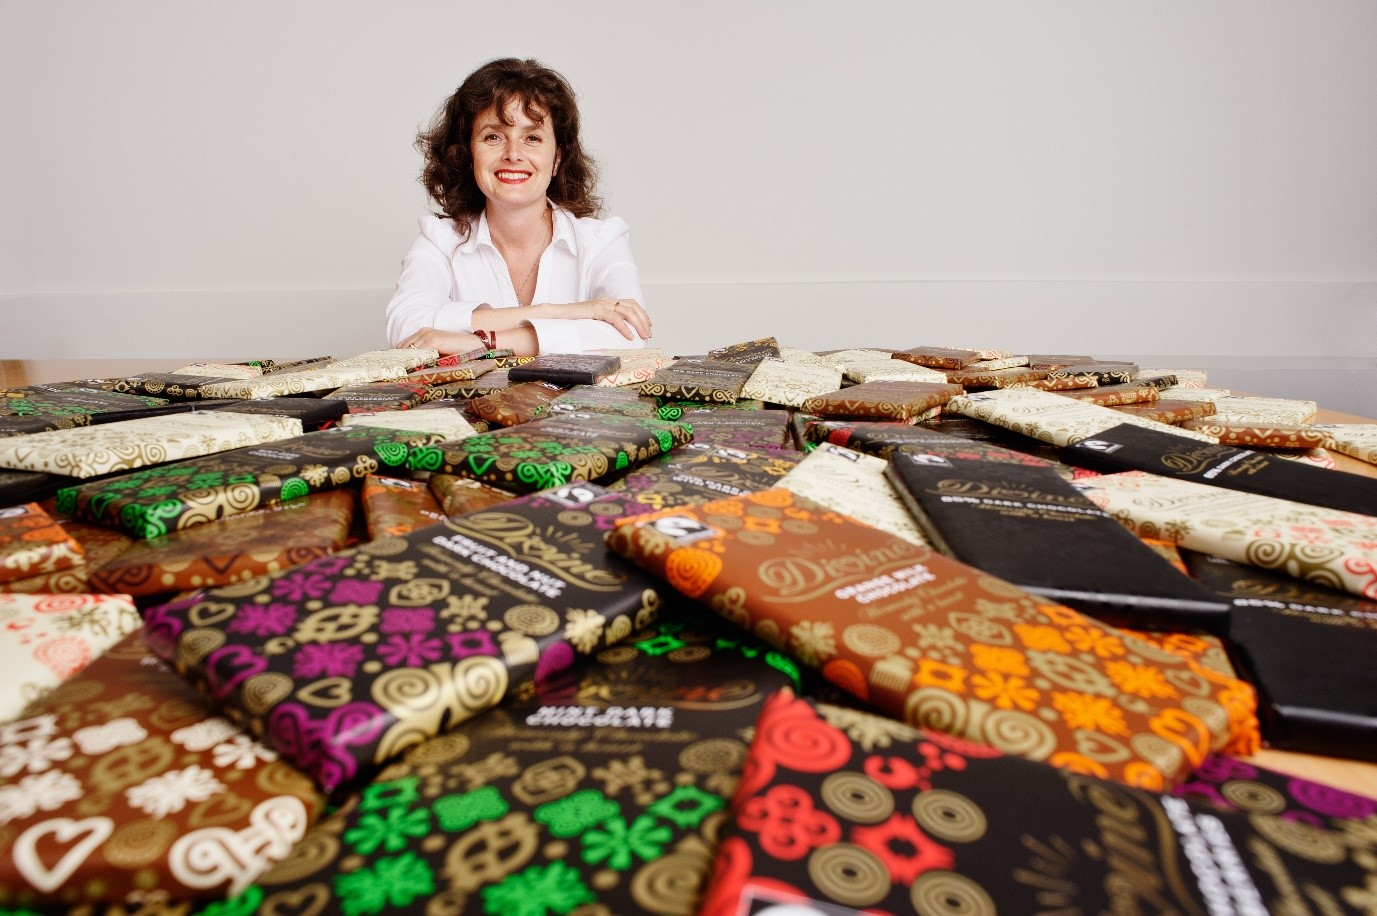 Sophi Trancell Group CEO Divine Chocolate Limited